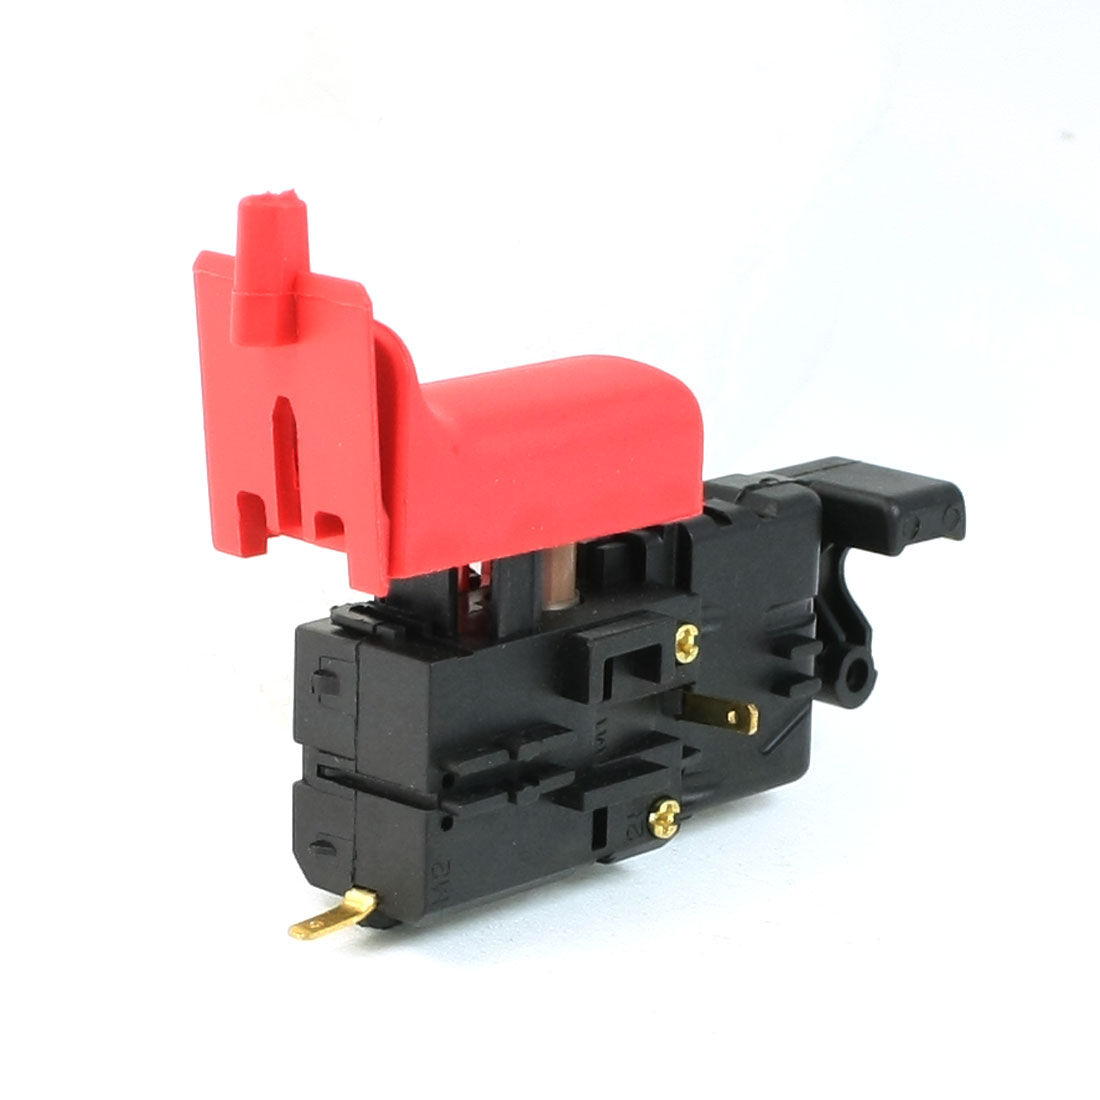 FA2-4/1BEK-5 AC 250V 6A SPST Manual Operation Lock on Electric Trigger Switch